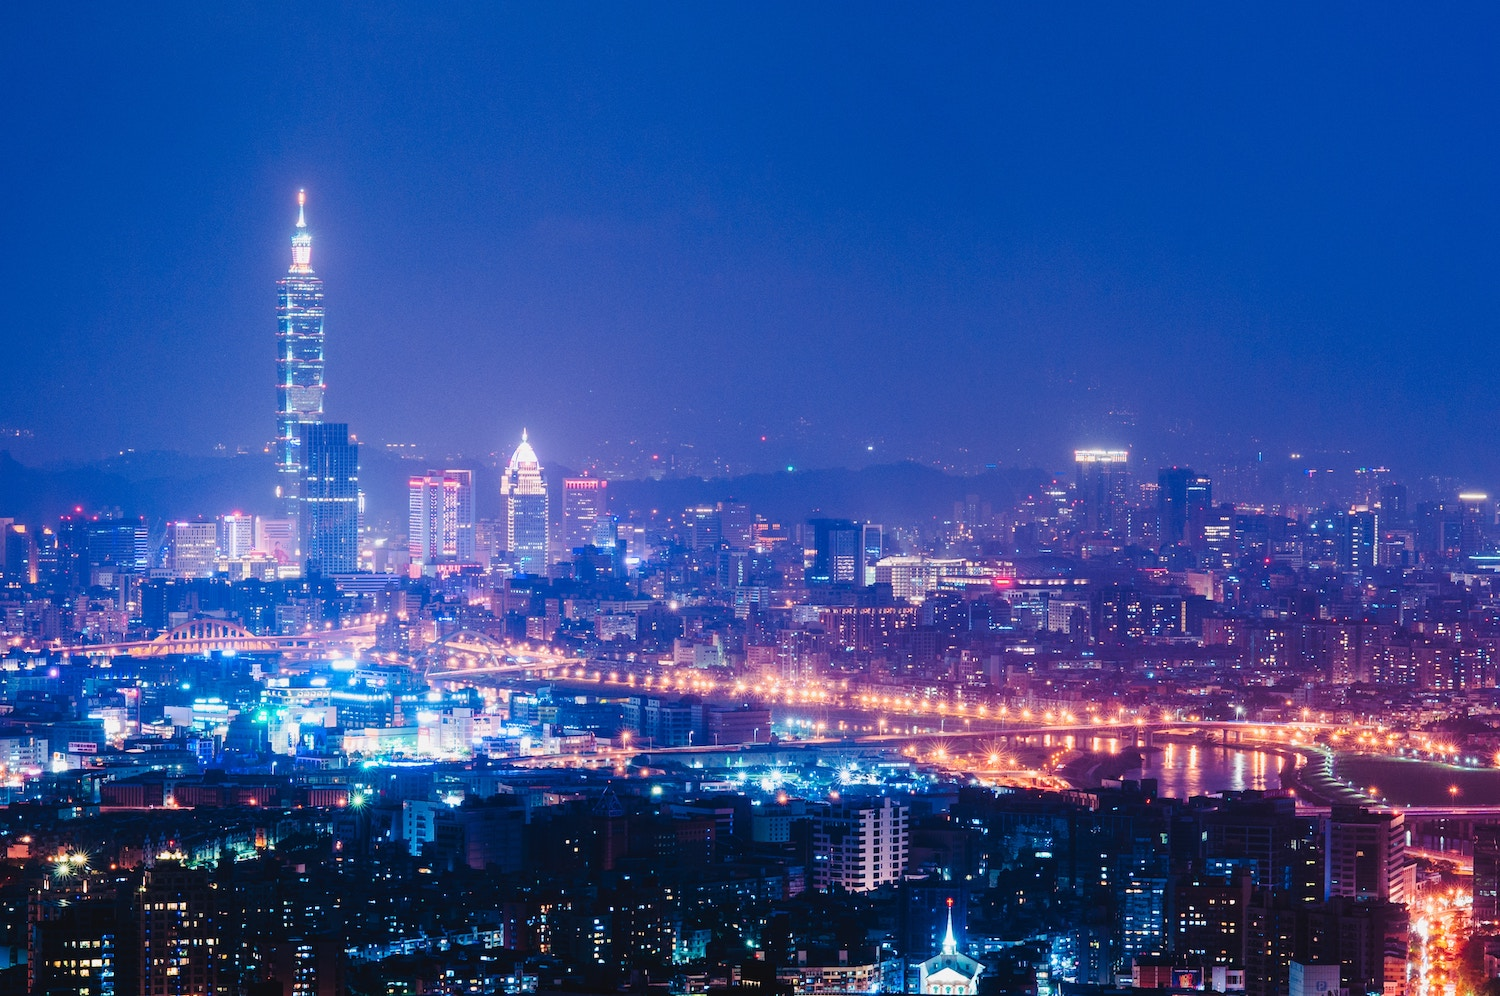 Panorama of Taipei during the night